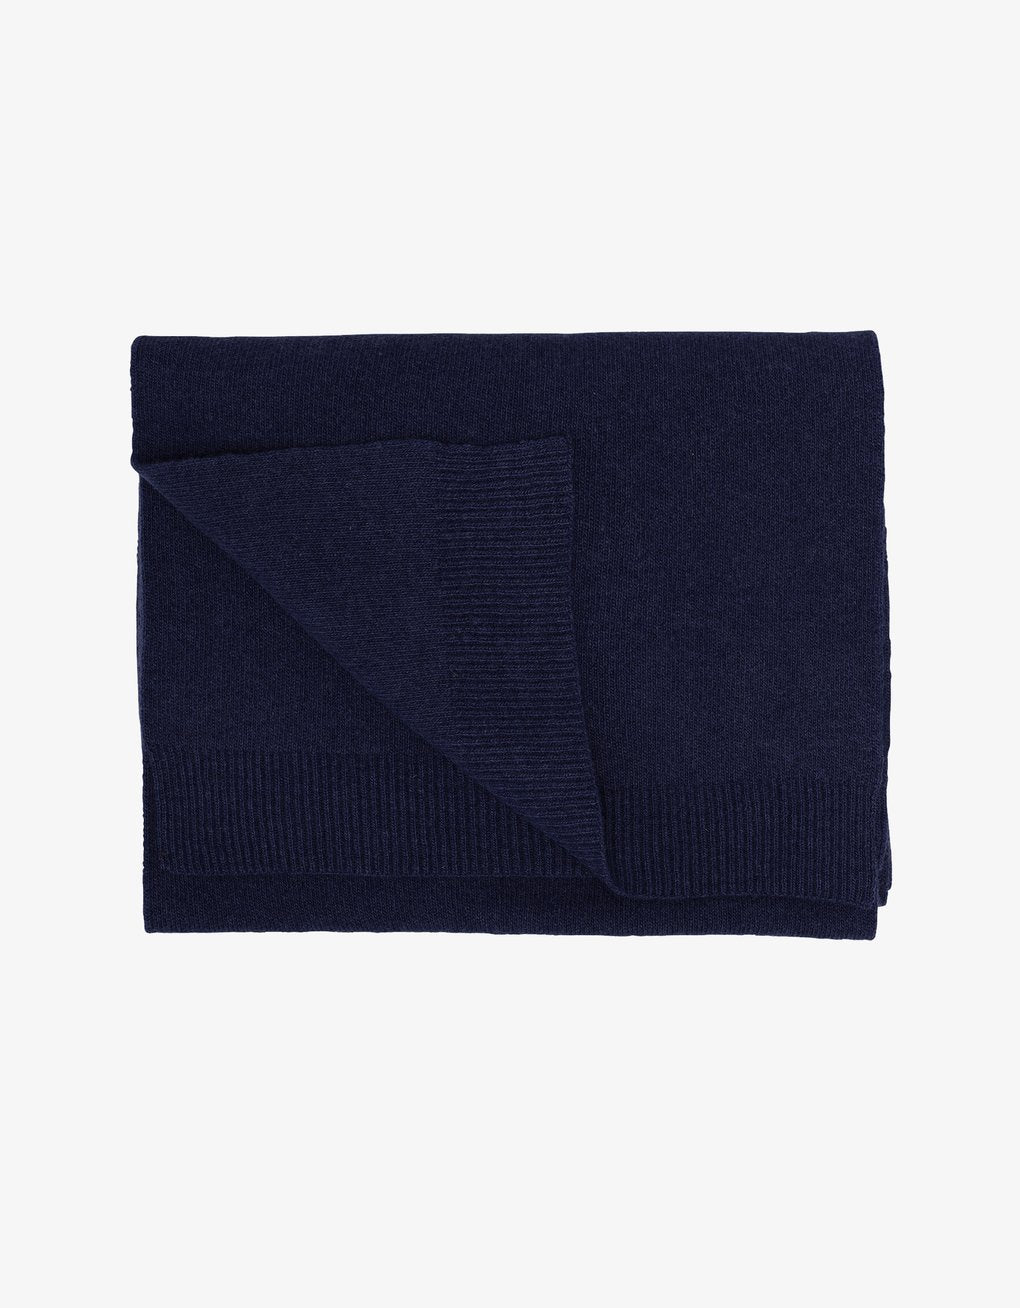 Colorful standard Merino Scarf - Navy Blue